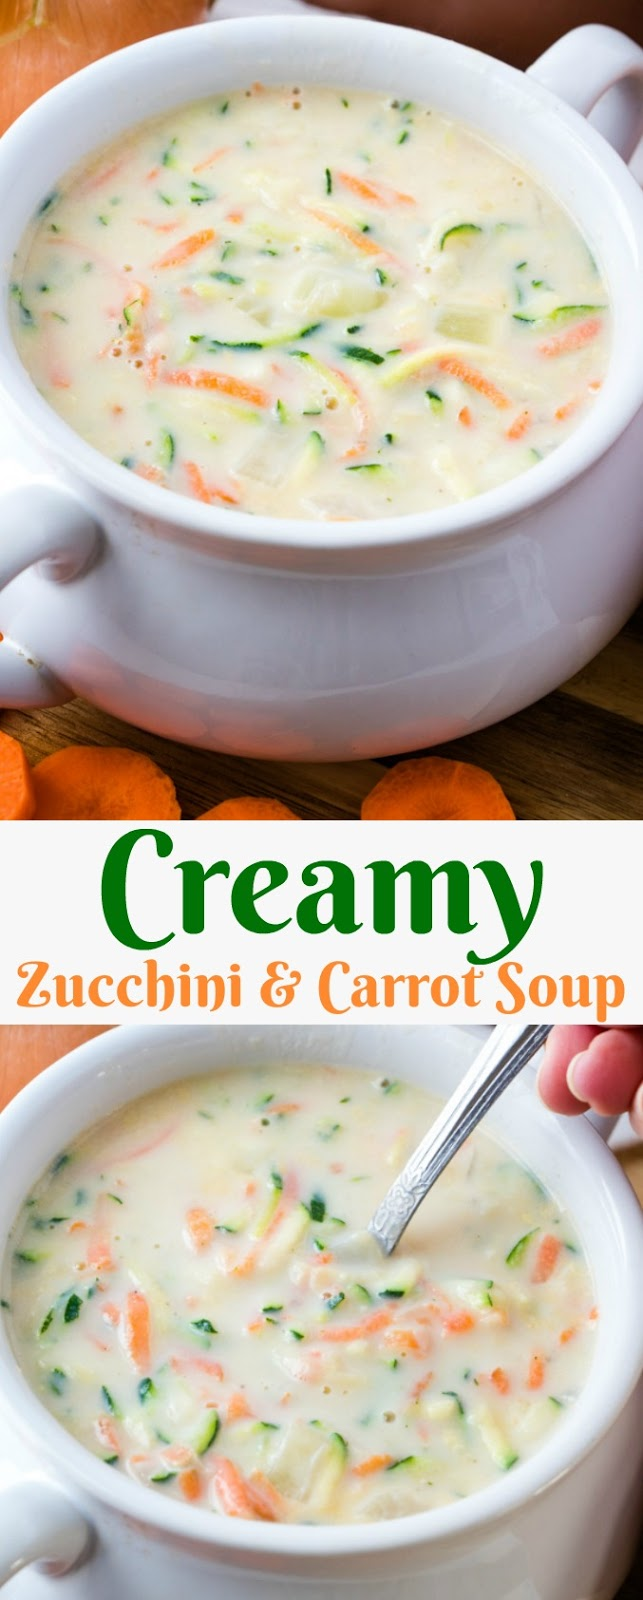 Creamy Zucchini and Carrot Soup Recipe from Hot Eats and Cool Reads! This easy and delicious soup is so perfect for lunch, dinner or freeze for later! Add leftover rotisserie chicken, bacon, cheese or herbs to make it your own! Great way to use zucchini or yellow summer squash from the garden!